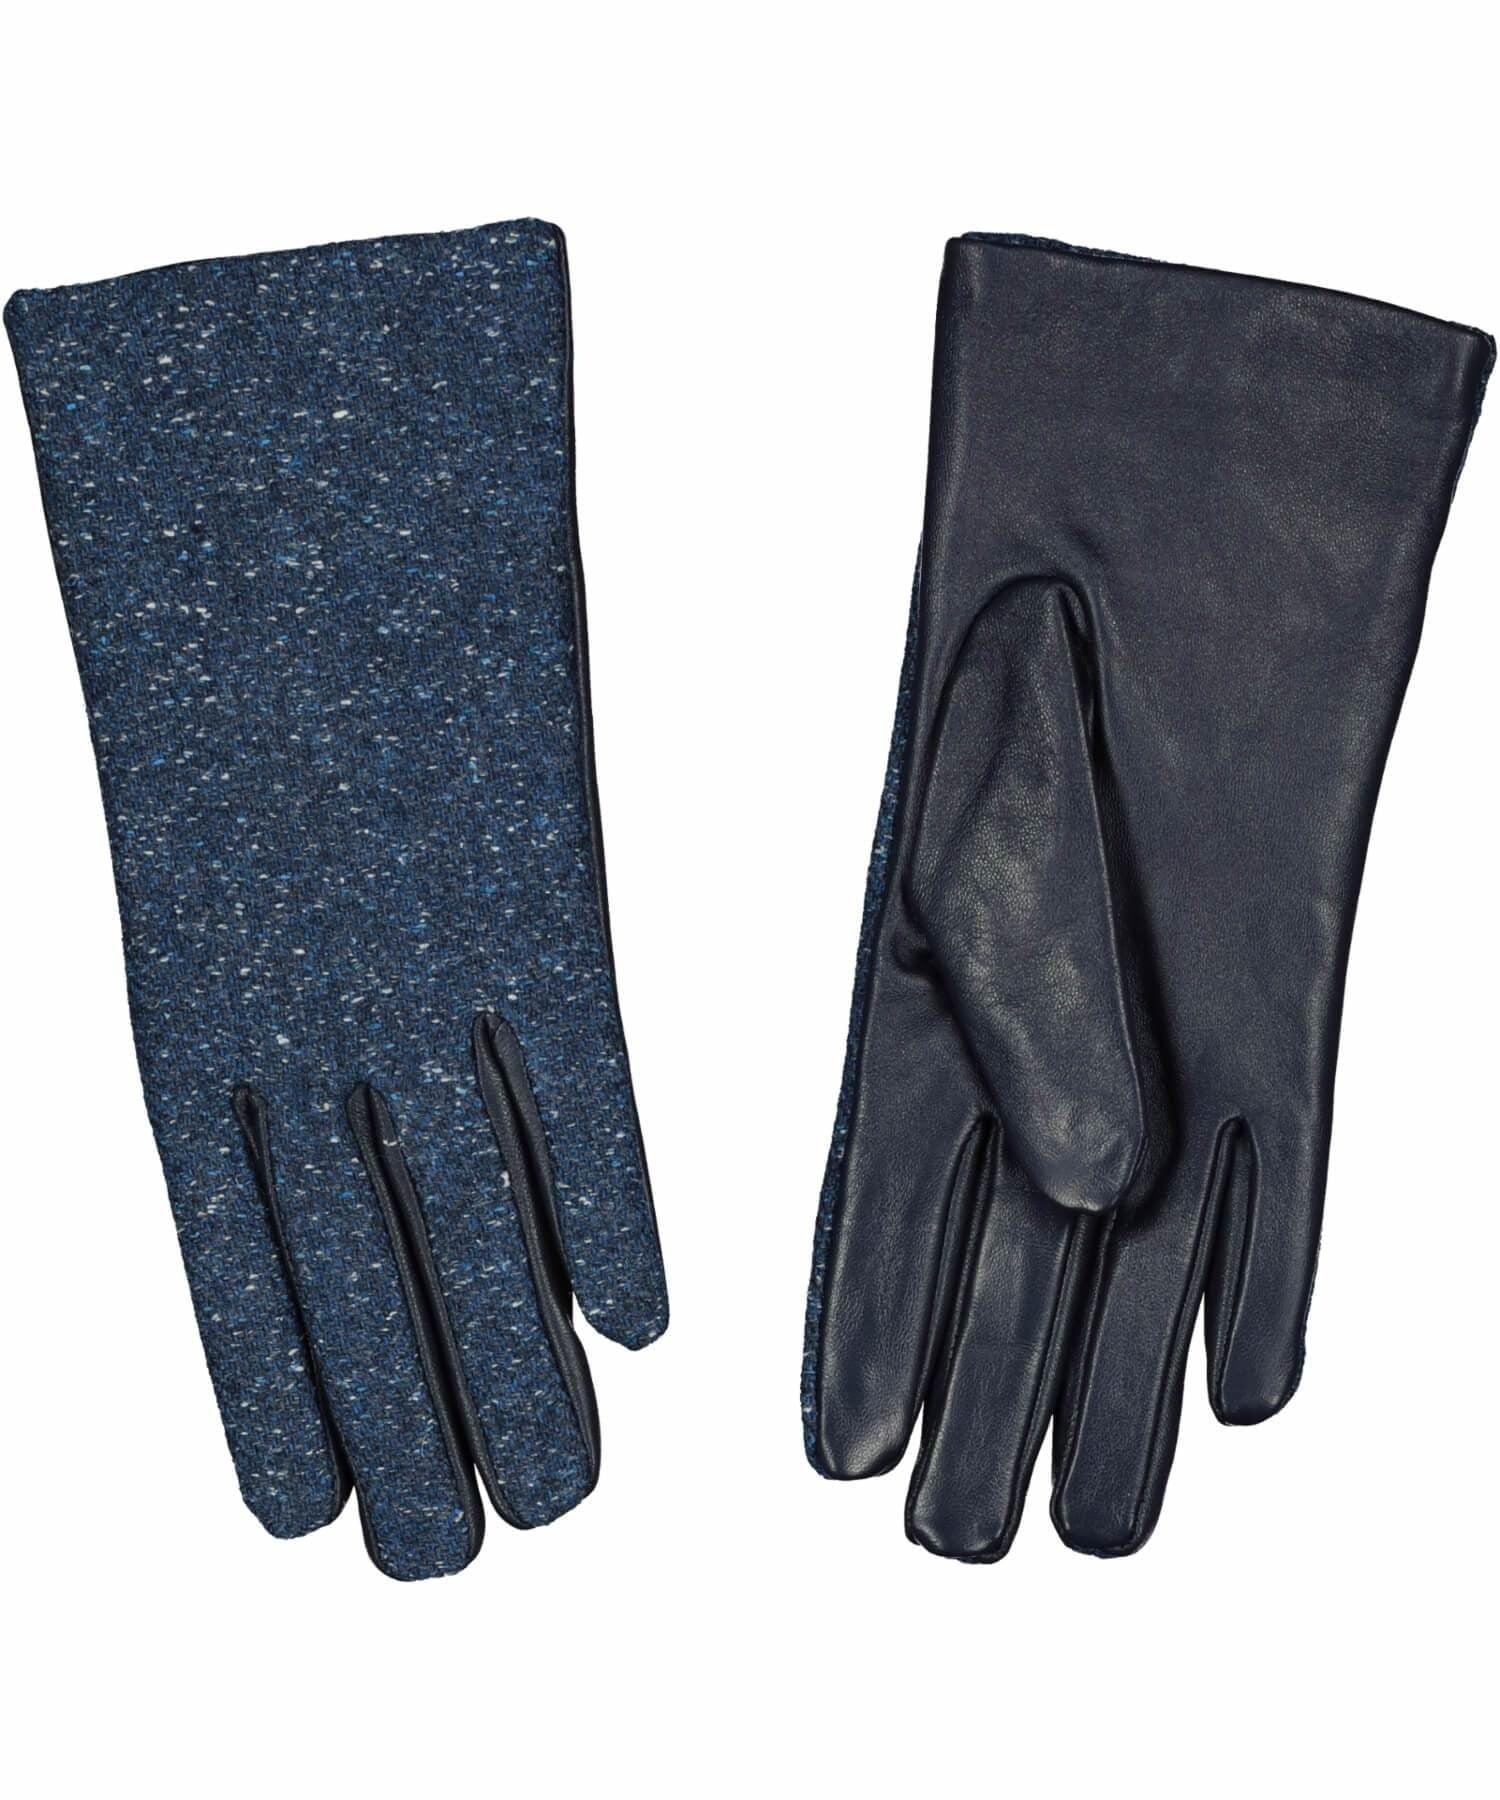 Kerry Tweed Leather Gloves - Midnight Blue - [Aran Woollen Mills] - Ladies Scarves & Gloves - Irish Gifts